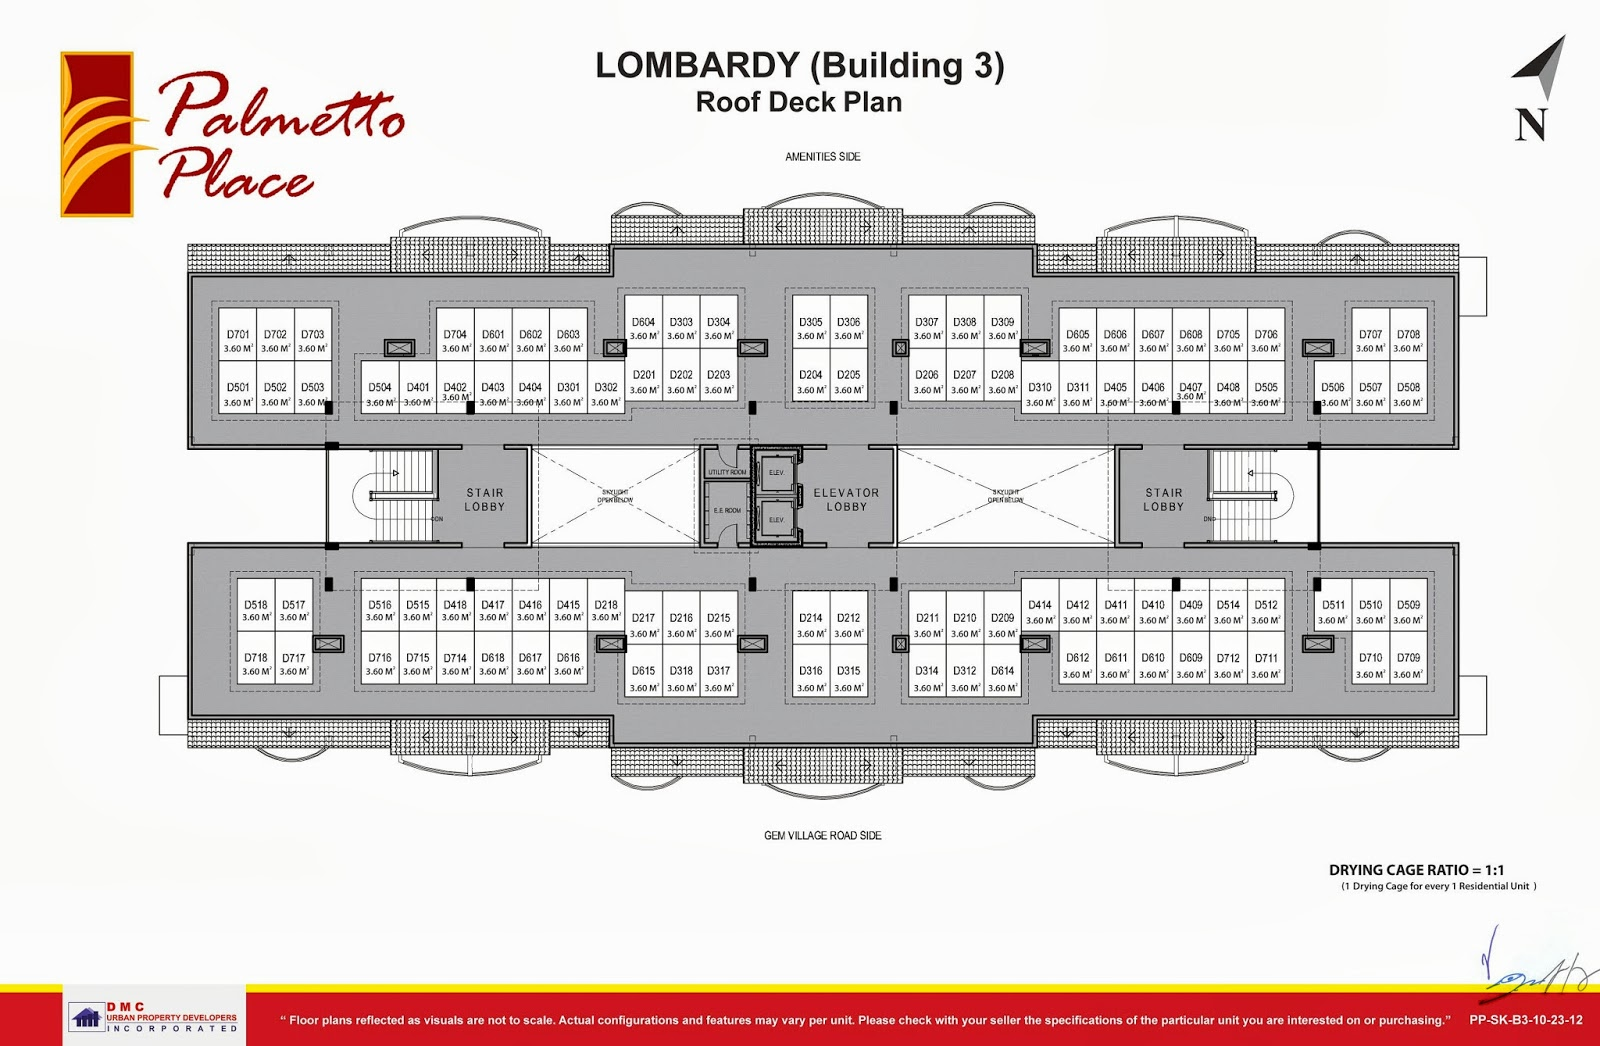 Palmetto Place Condominium, Ma-a, Davao City Roof Deck Floor Plan